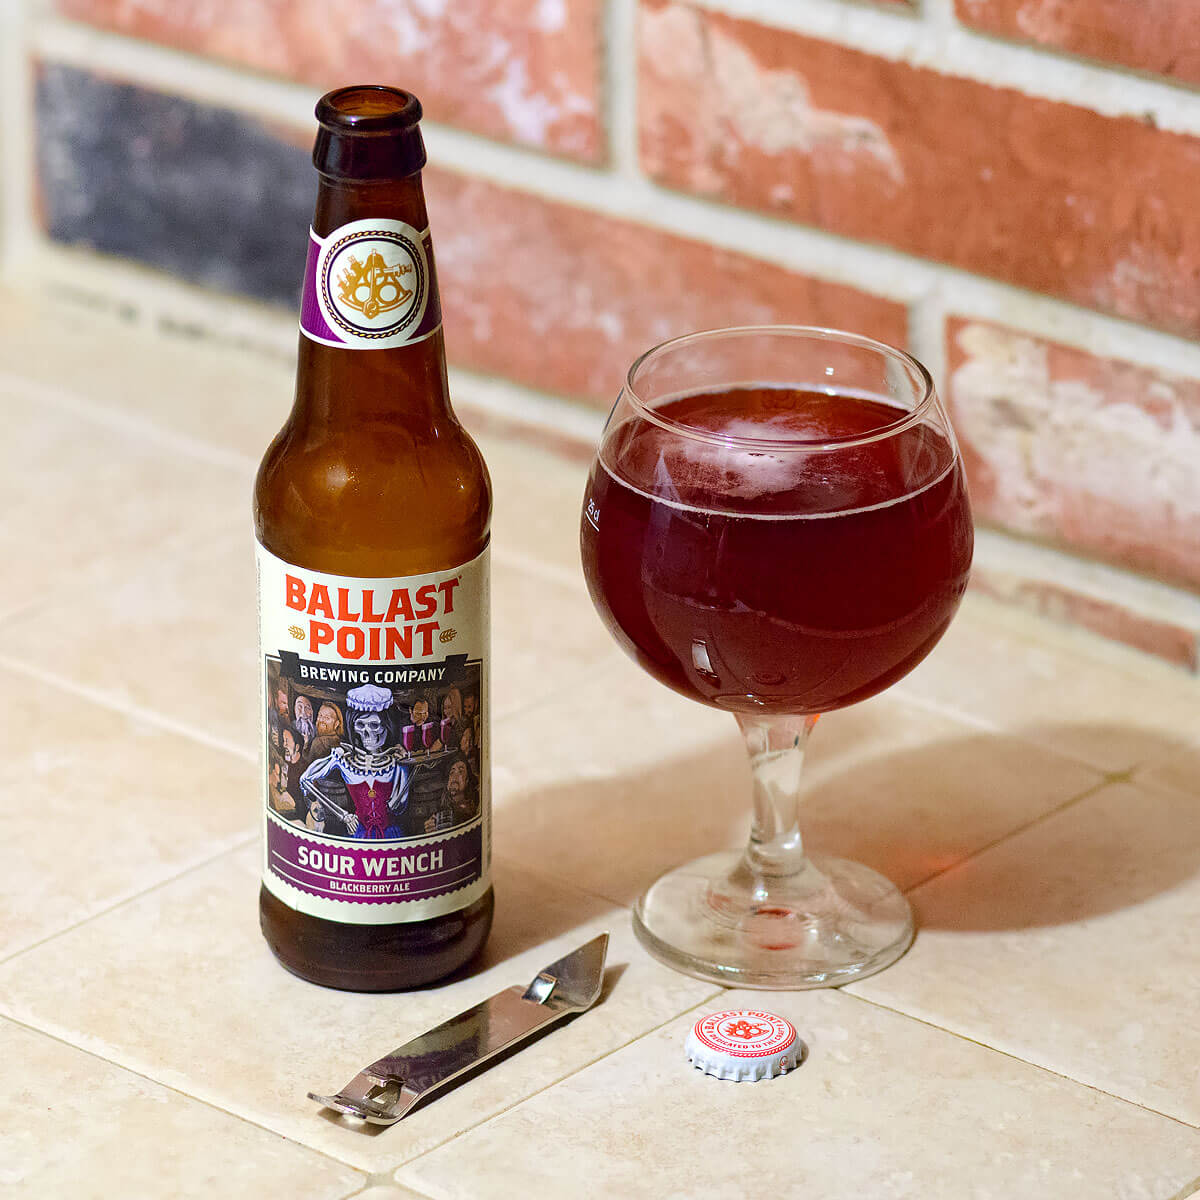 Sour Wench is a German-style Berliner Weisse by Ballast Point Brewing Company that refreshingly blends tart fruit flavors of blackberry and lemon.